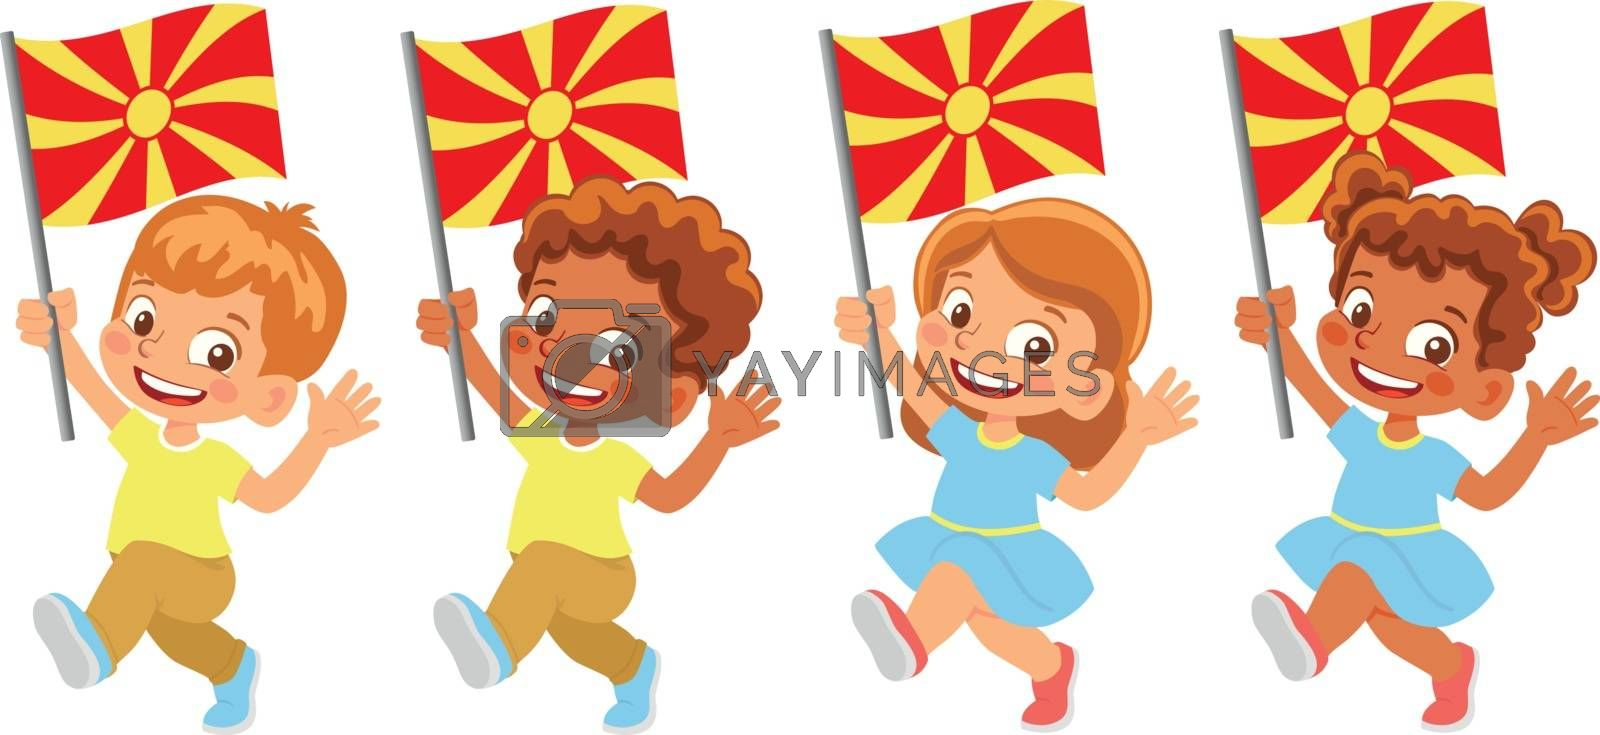 Macedonia flag in hand set by Visual-Content